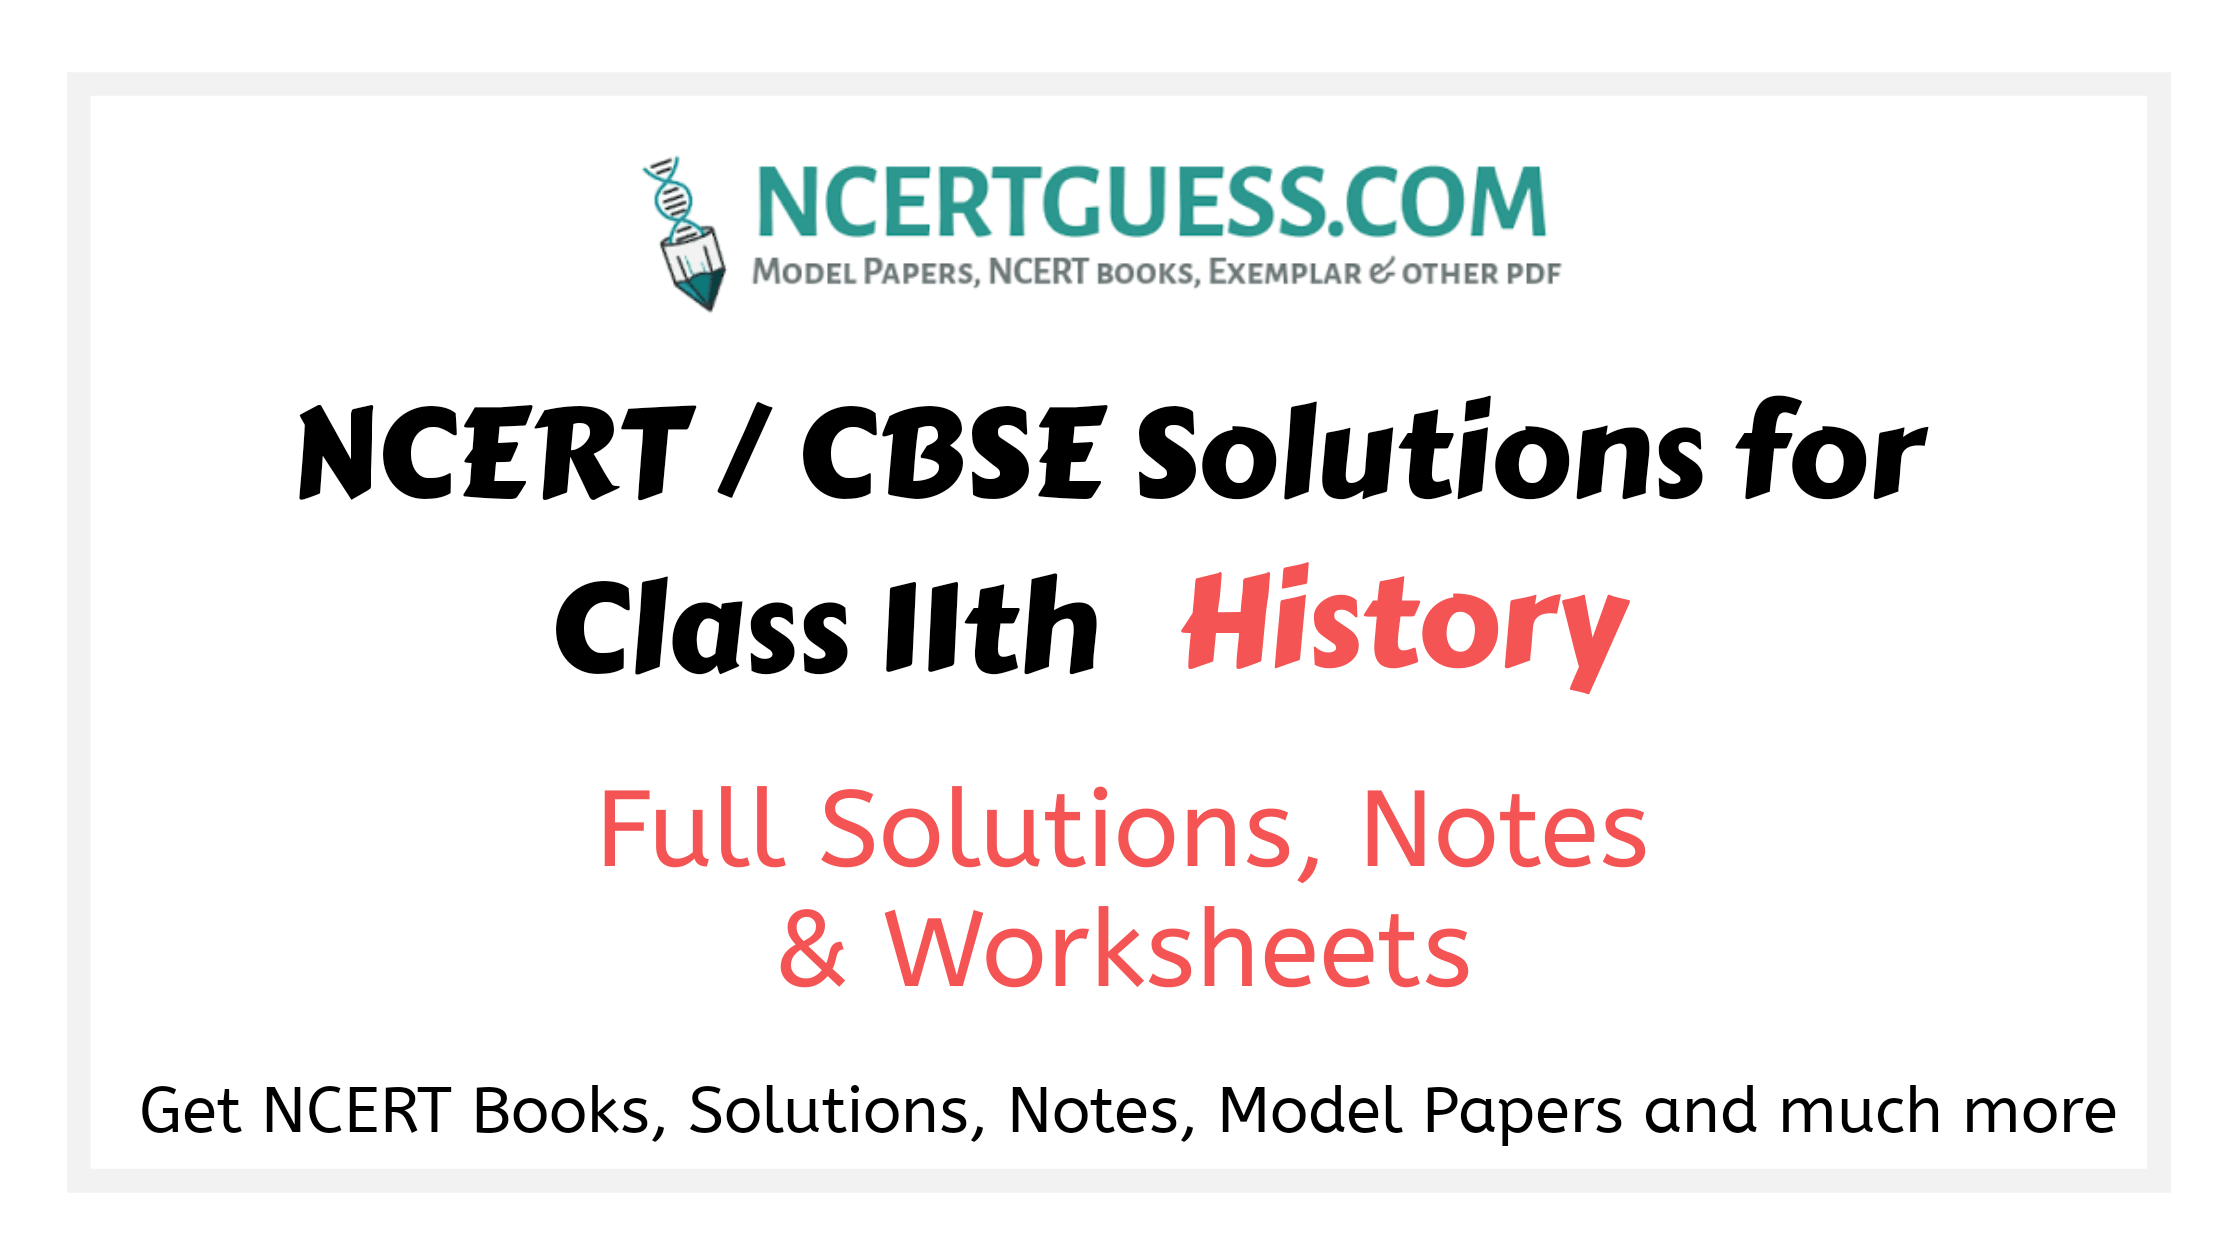 Class 11th history Solutions